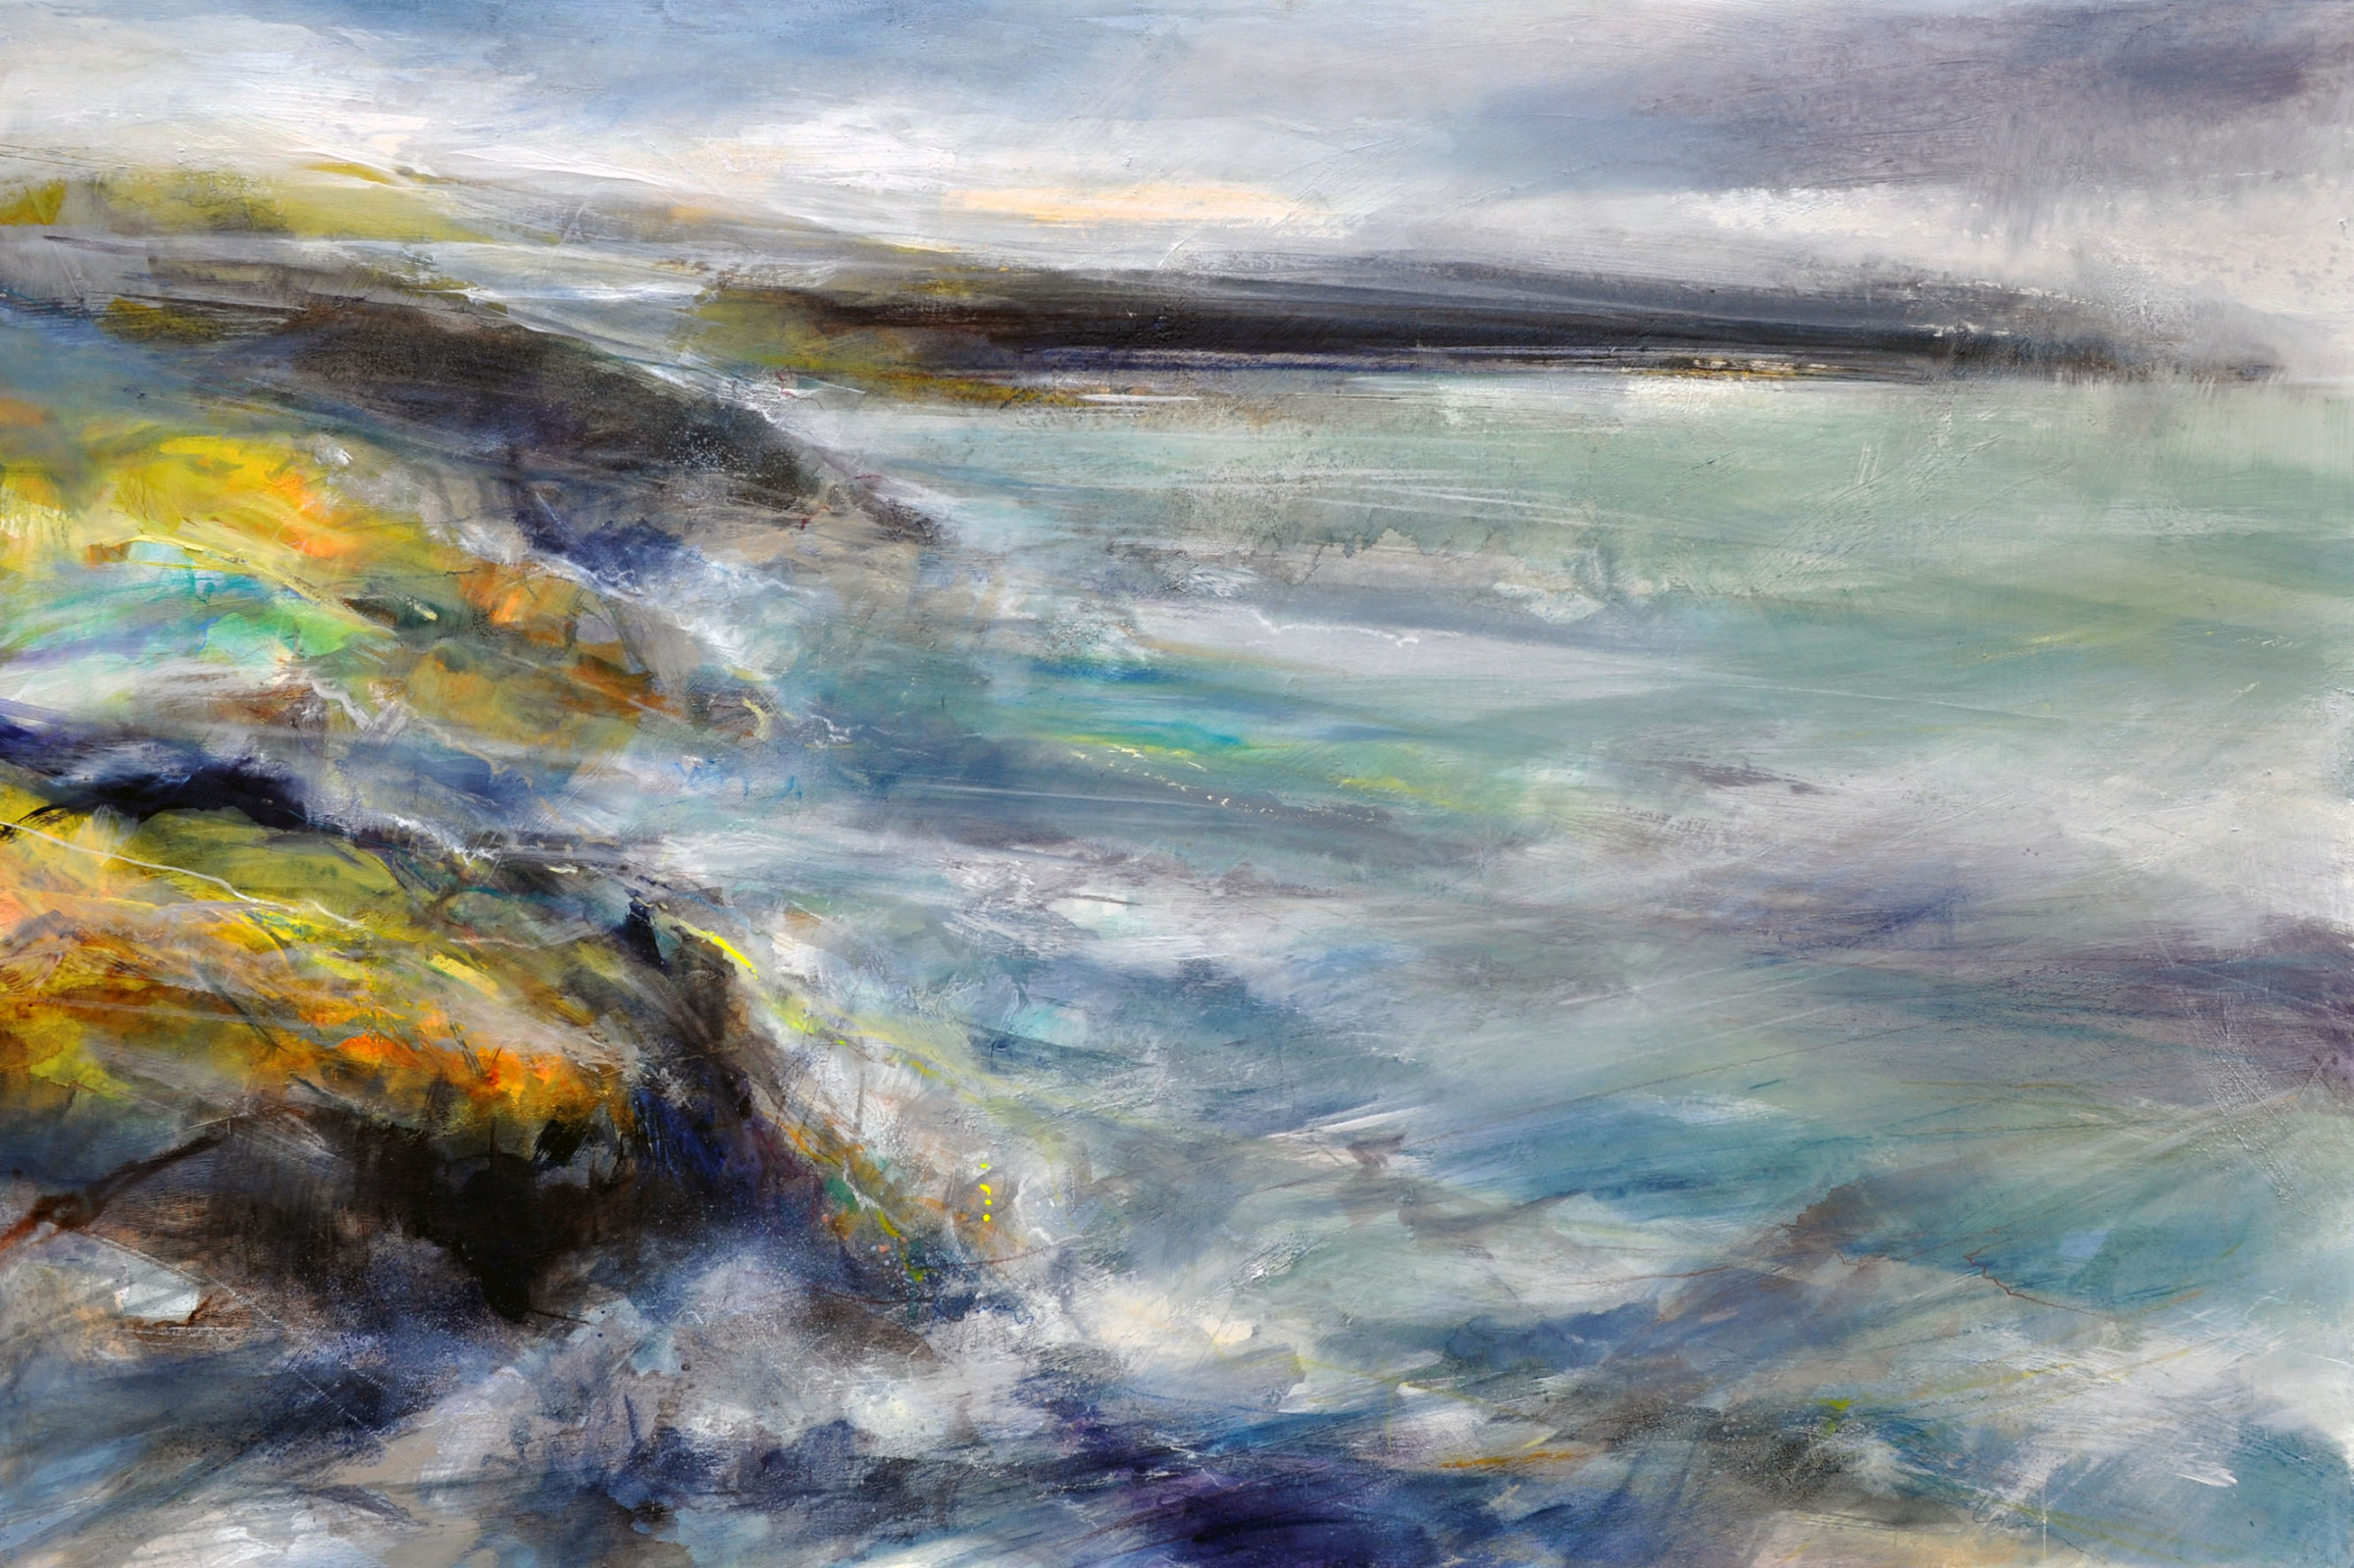 <span class=&#34;link fancybox-details-link&#34;><a href=&#34;/artists/90-freya-horsley/works/4165-freya-horsley-cape-2017/&#34;>View Detail Page</a></span><div class=&#34;artist&#34;><strong>Freya Horsley</strong></div> <div class=&#34;title&#34;><em>Cape</em>, 2017</div> <div class=&#34;signed_and_dated&#34;>signed on reverse</div> <div class=&#34;medium&#34;>mixed media on canvas</div> <div class=&#34;dimensions&#34;>80 x 120 cm<br /> 31 1/2 x 47 1/4 inches</div><div class=&#34;copyright_line&#34;>OwnArt: £ 175 x 10 Months, 0% APR</div>